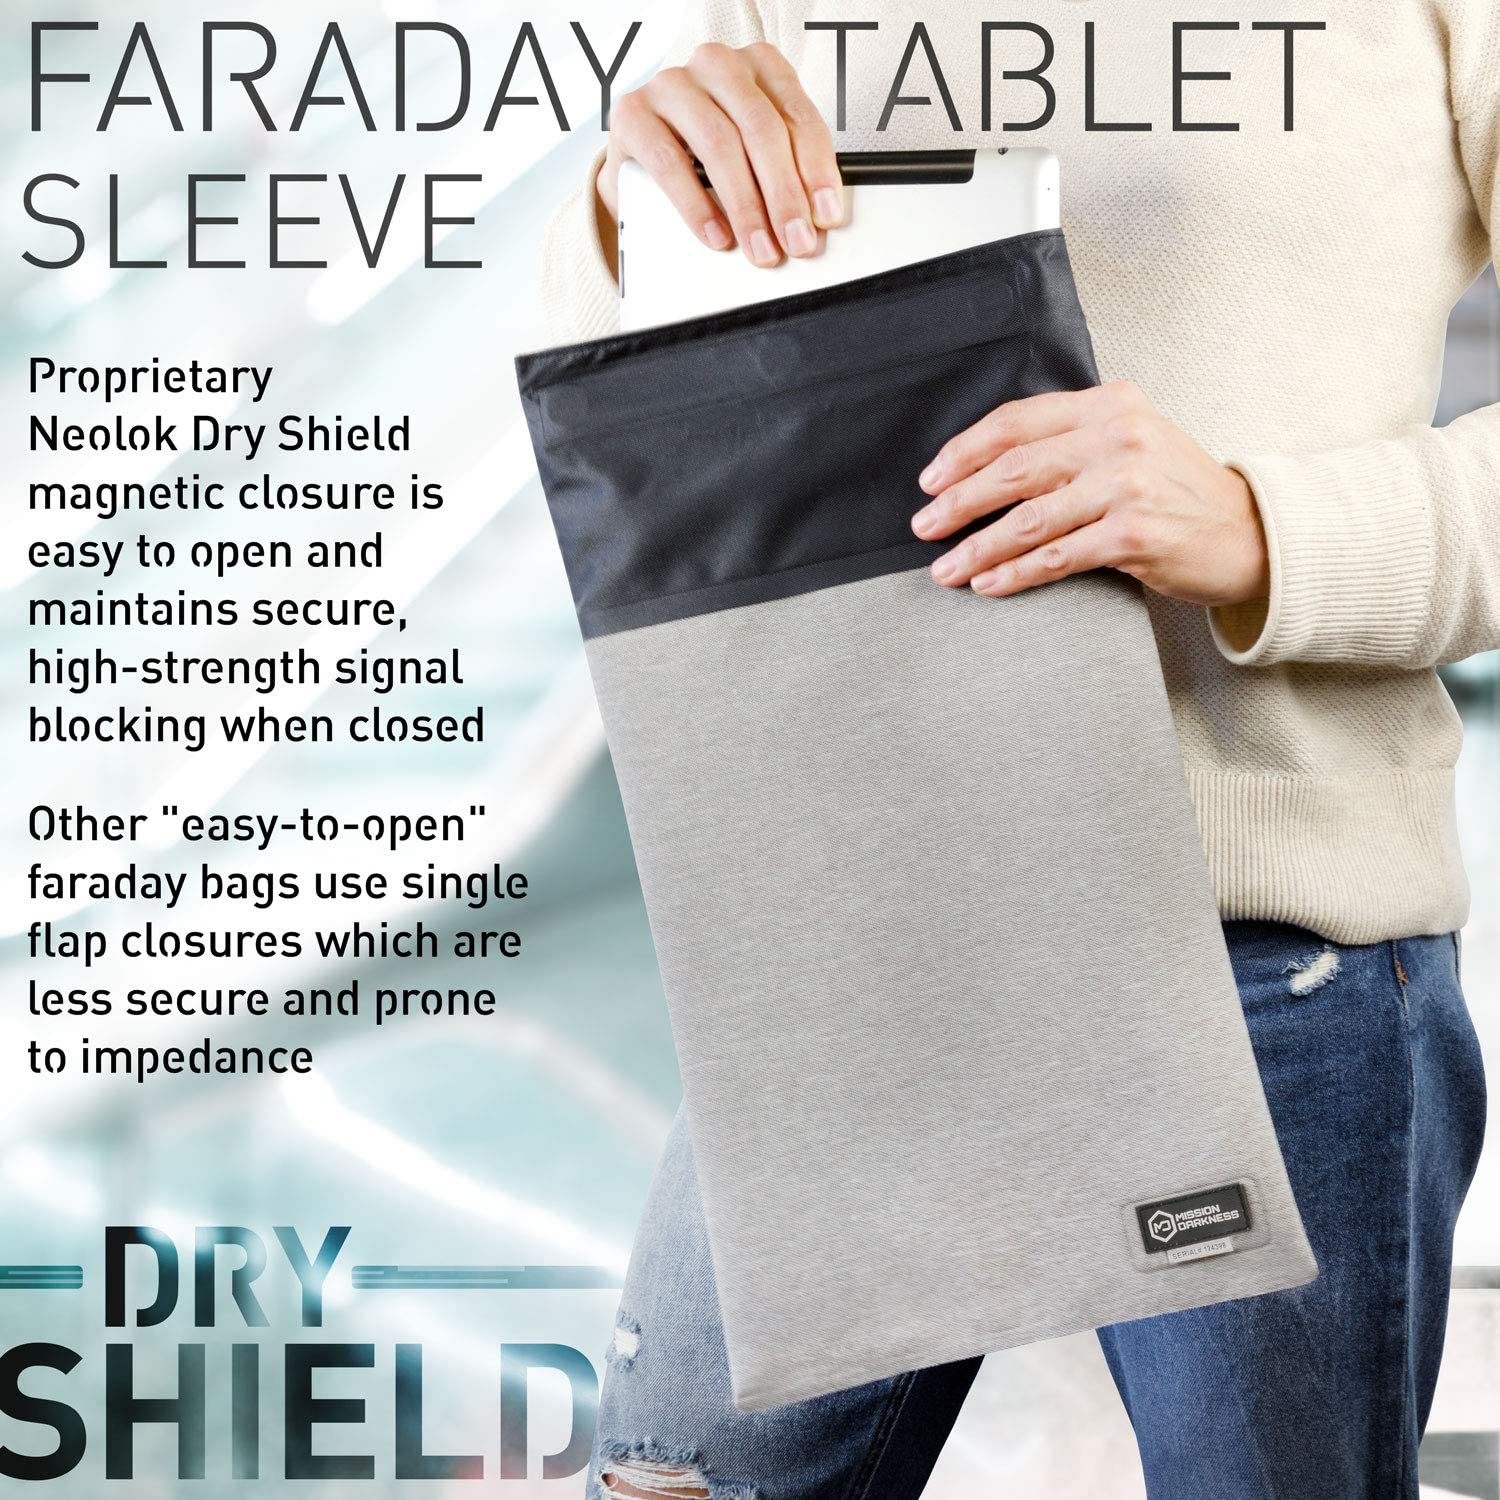 Data Privacy Electronic Device Security RF Shielding Liner //// Signal Blocking Anti-Tracking EMP Shield Mission Darkness Dry Shield Faraday Tablet Sleeve //// Slim Waterproof Dry Bag for Tablets